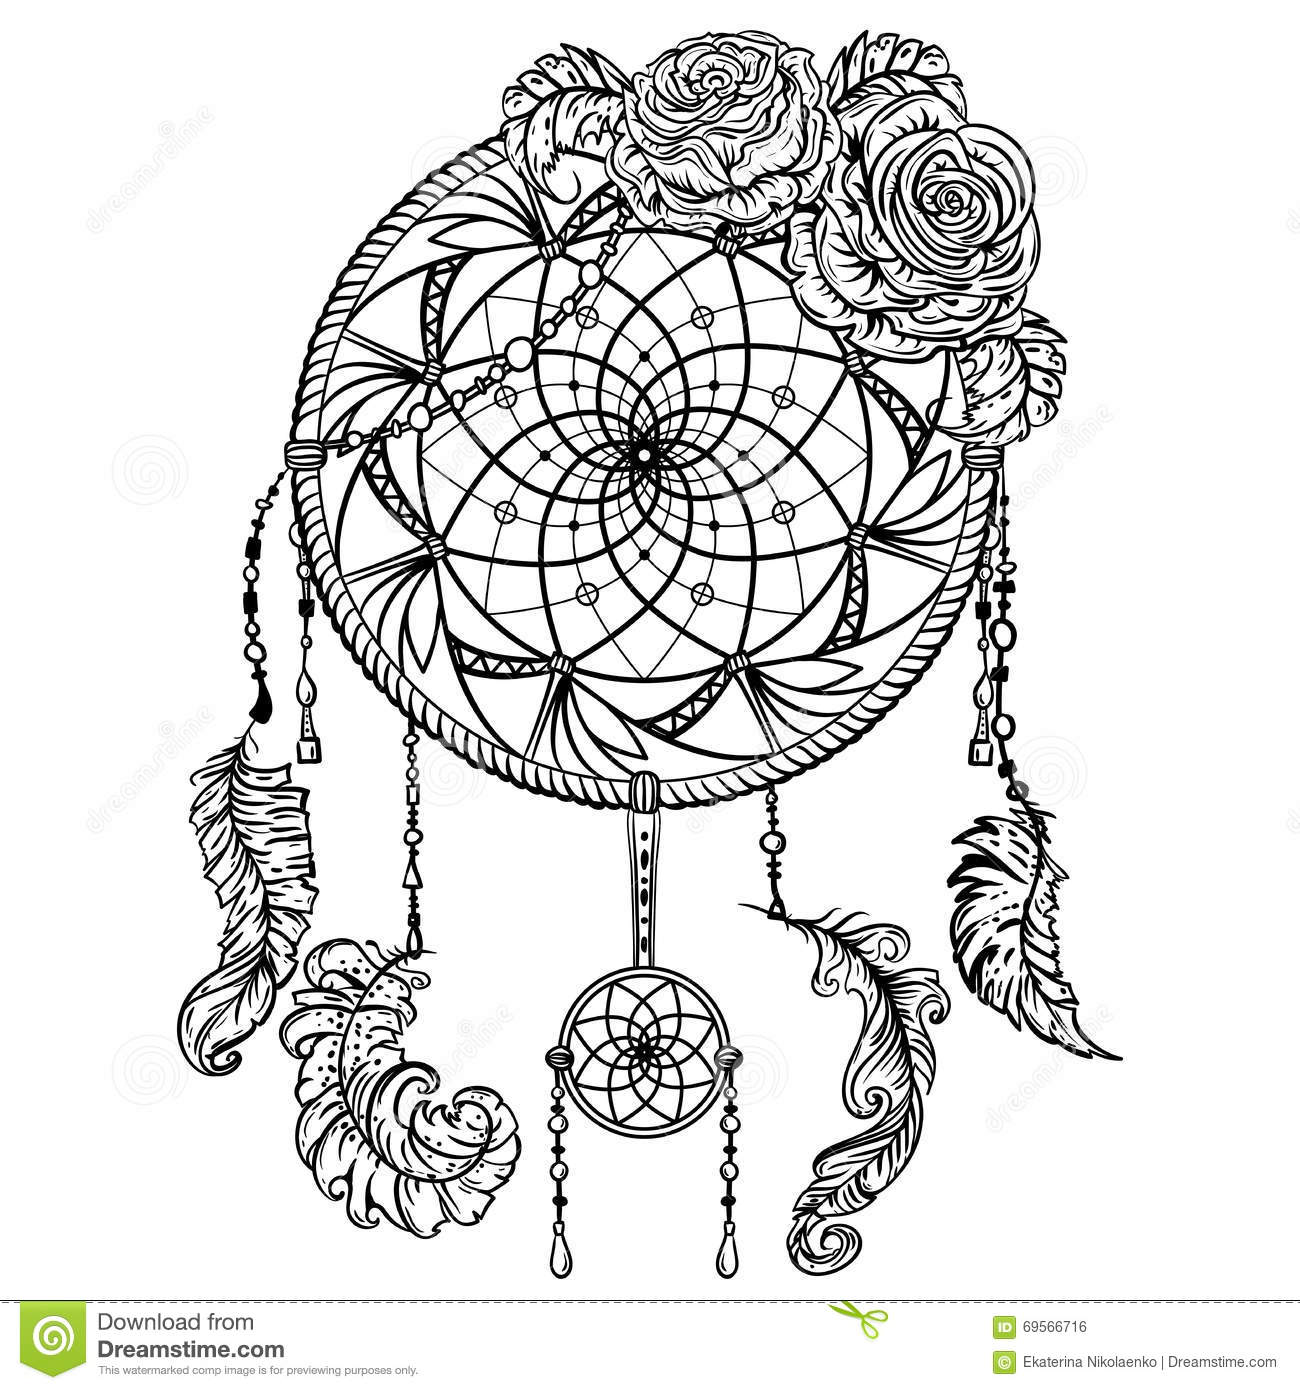 Dream Catcher With Ornament And Roses Tattoo Art Stock Vector Image 69566716